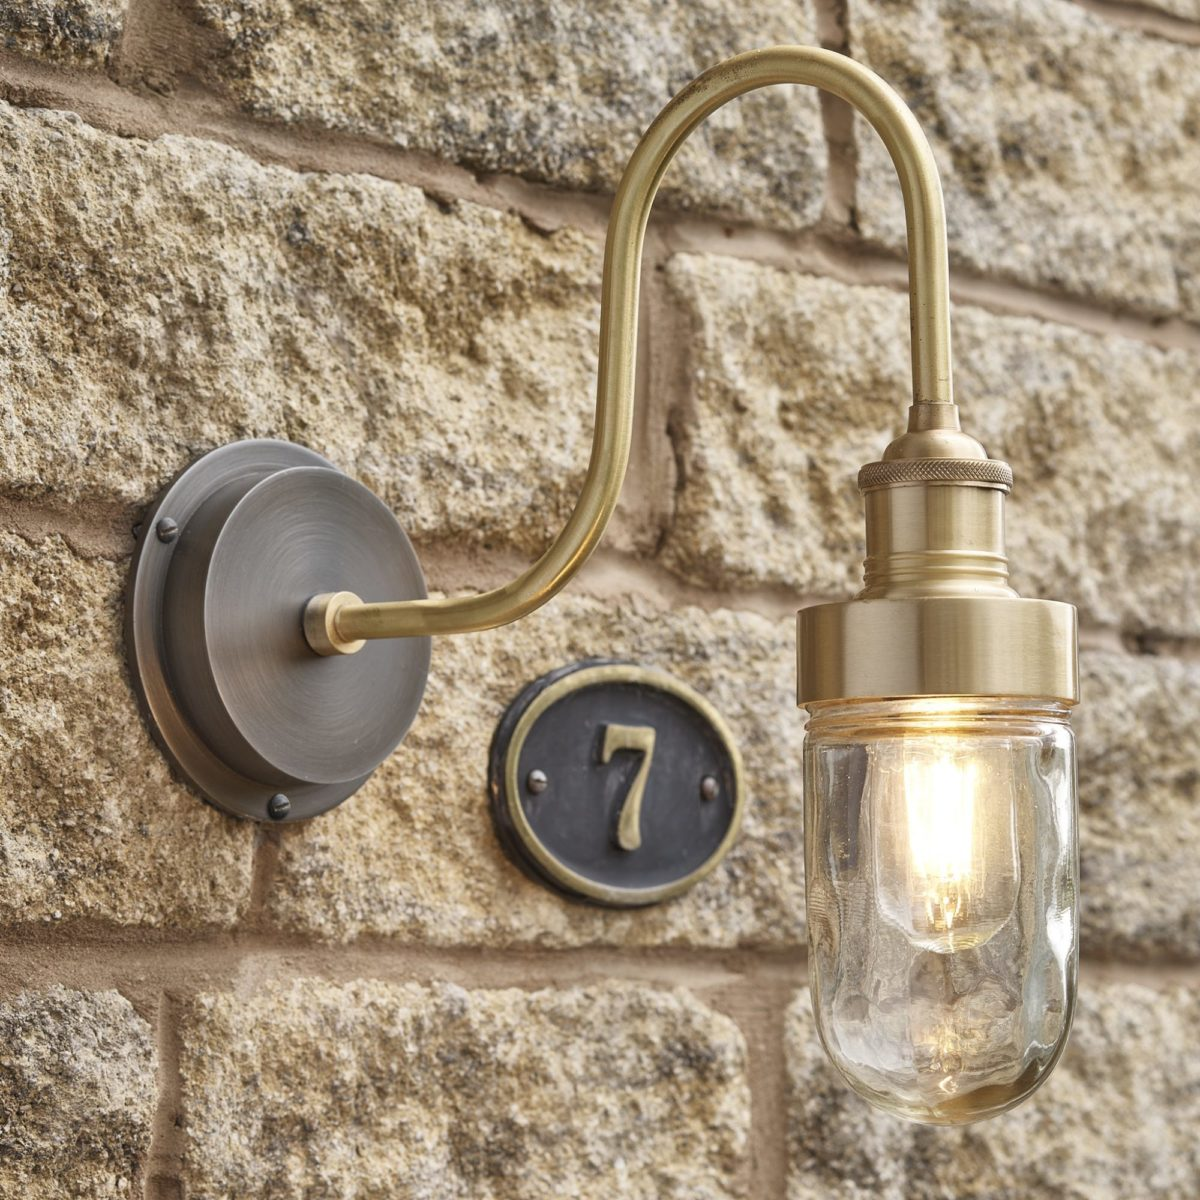 24lime-lace_swan-neck-outdoor-amp-bathroom-wall-light-in-brass--1200x1200.jpg